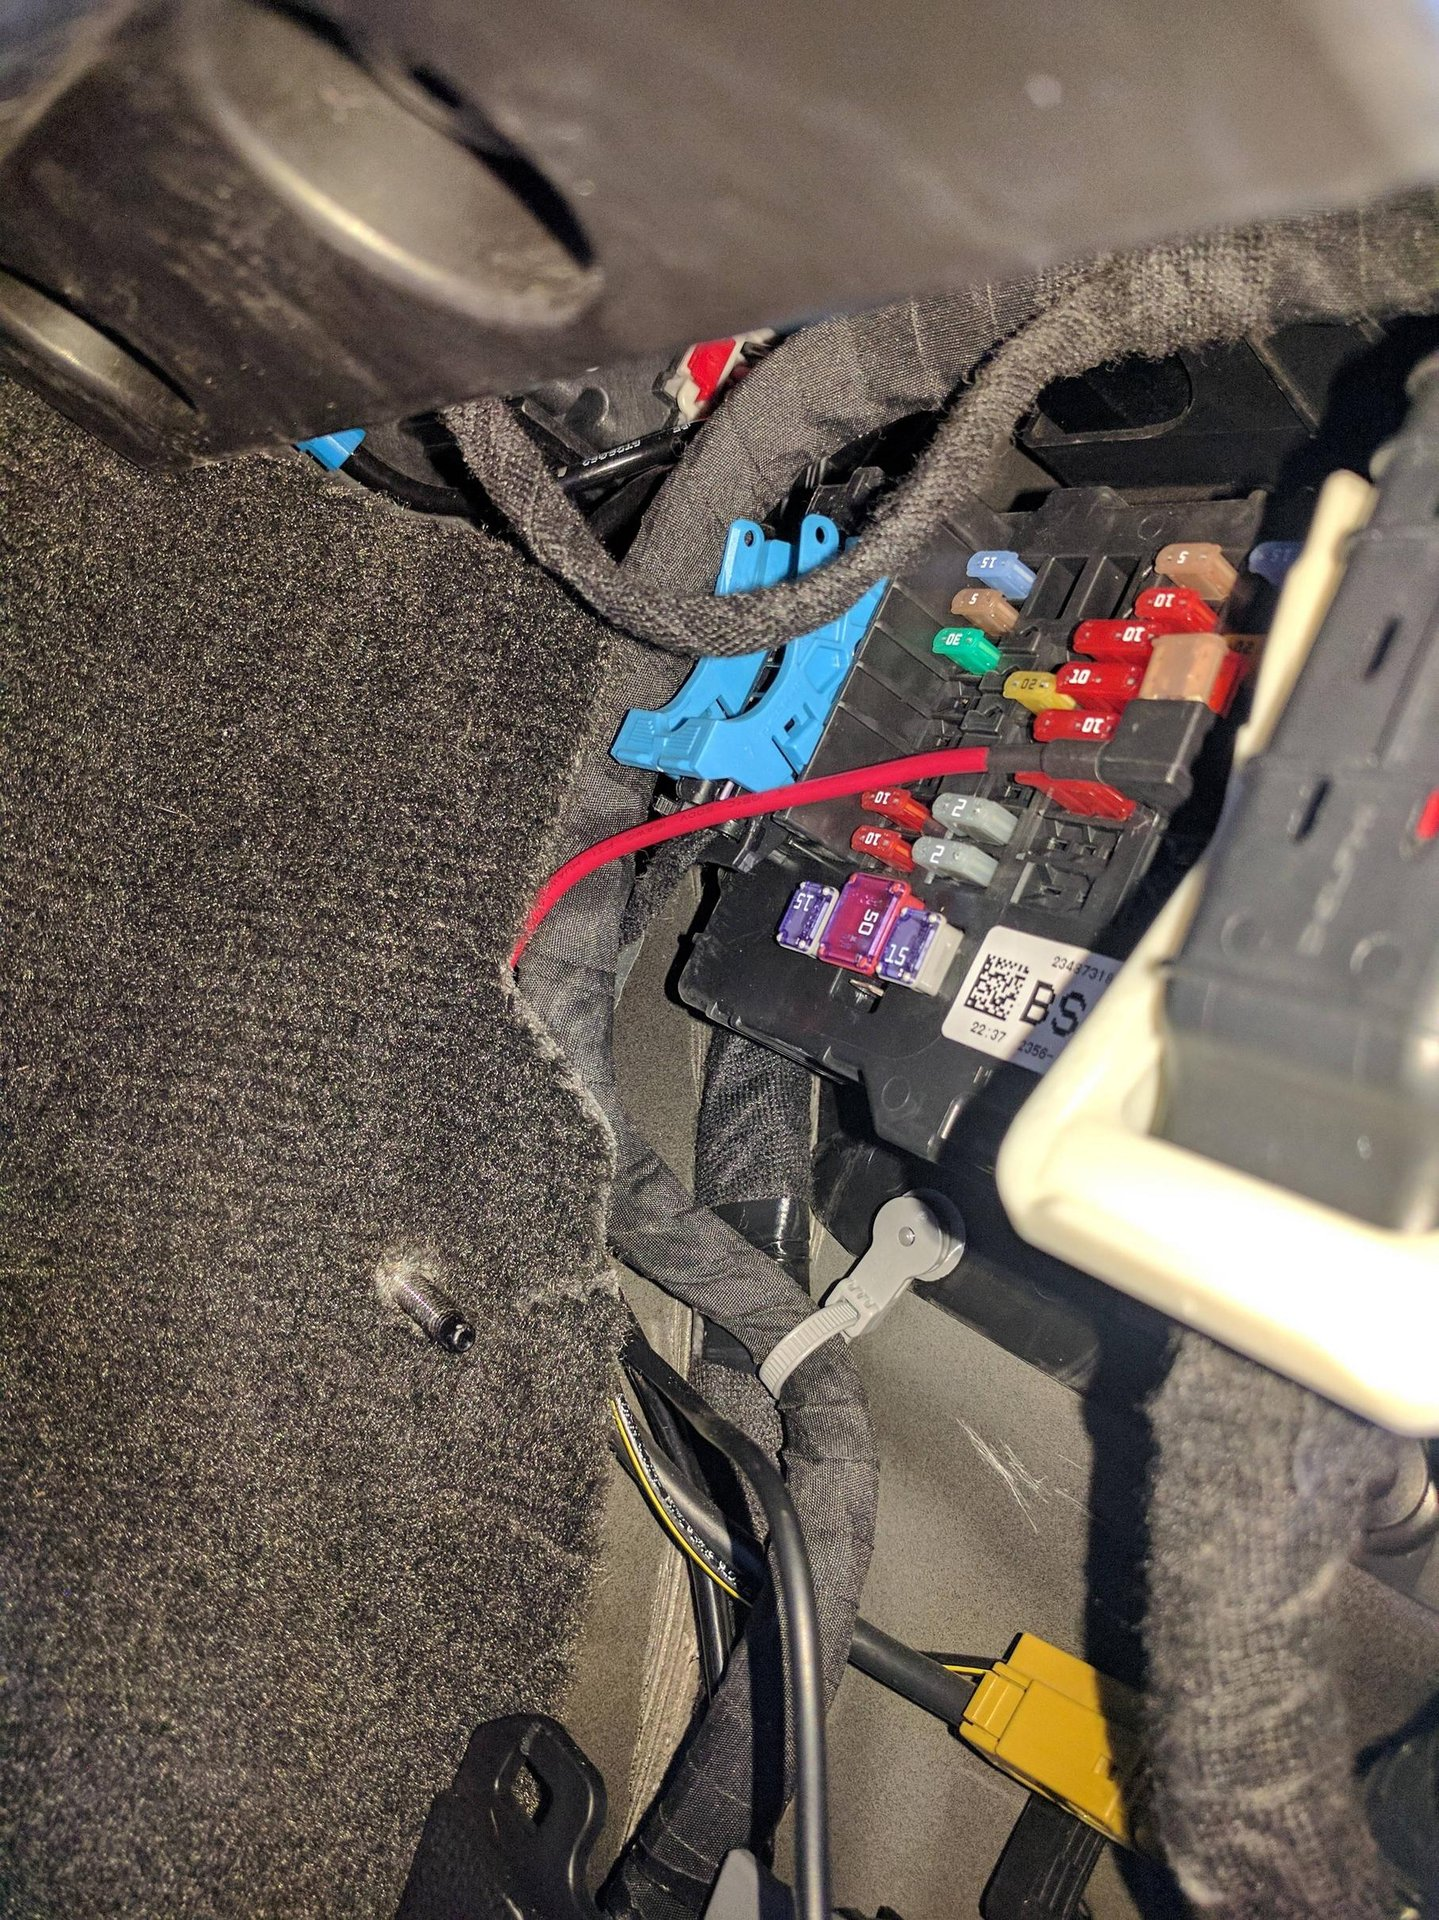 for the 2016 colorado, fuse f29 is only hot when the truck is on  so thats  the fuse i tapped into to power my dash cam